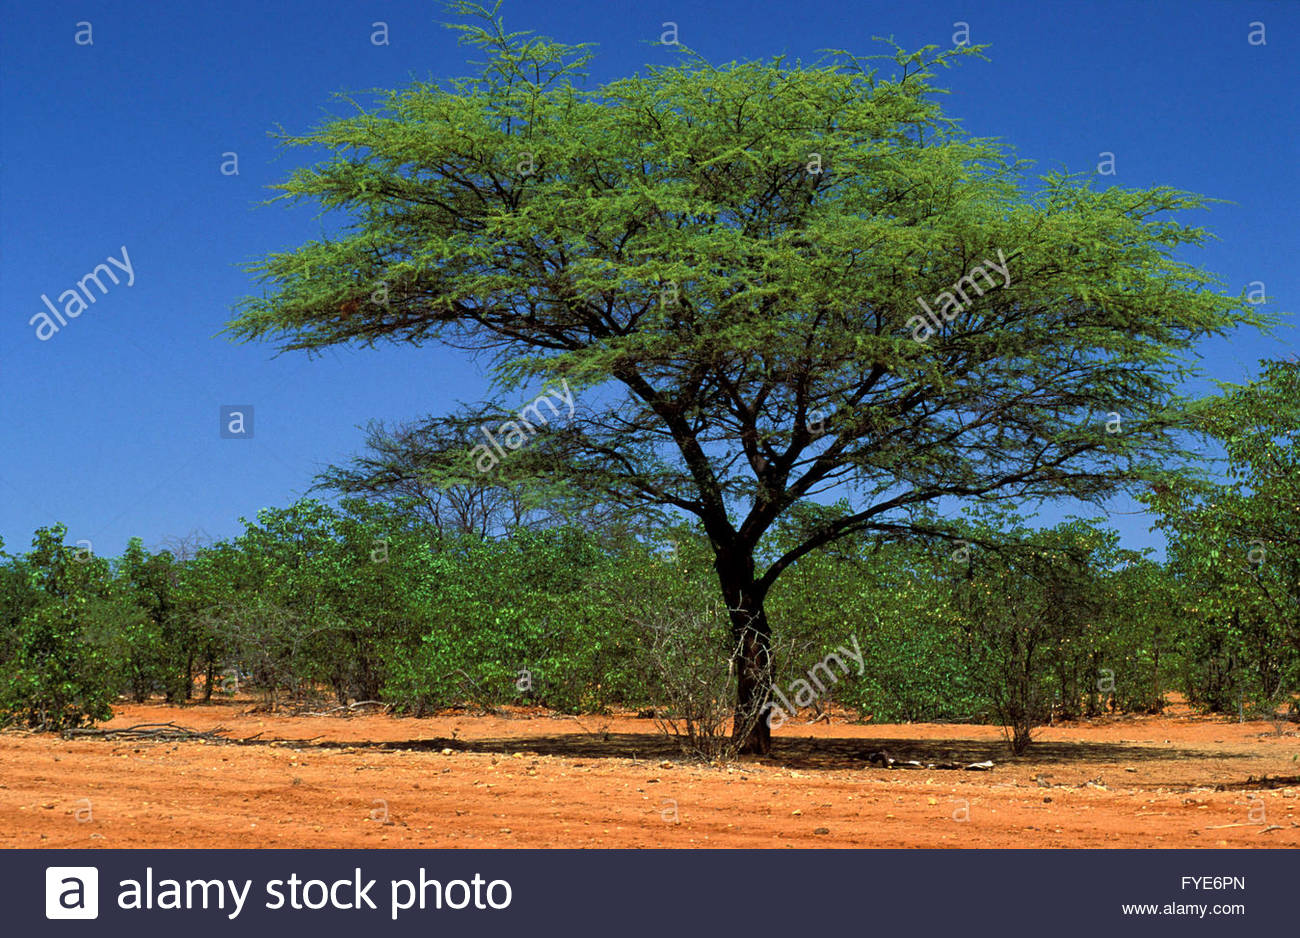 Landscape in the Kaokoland Namibia. - Stock Image